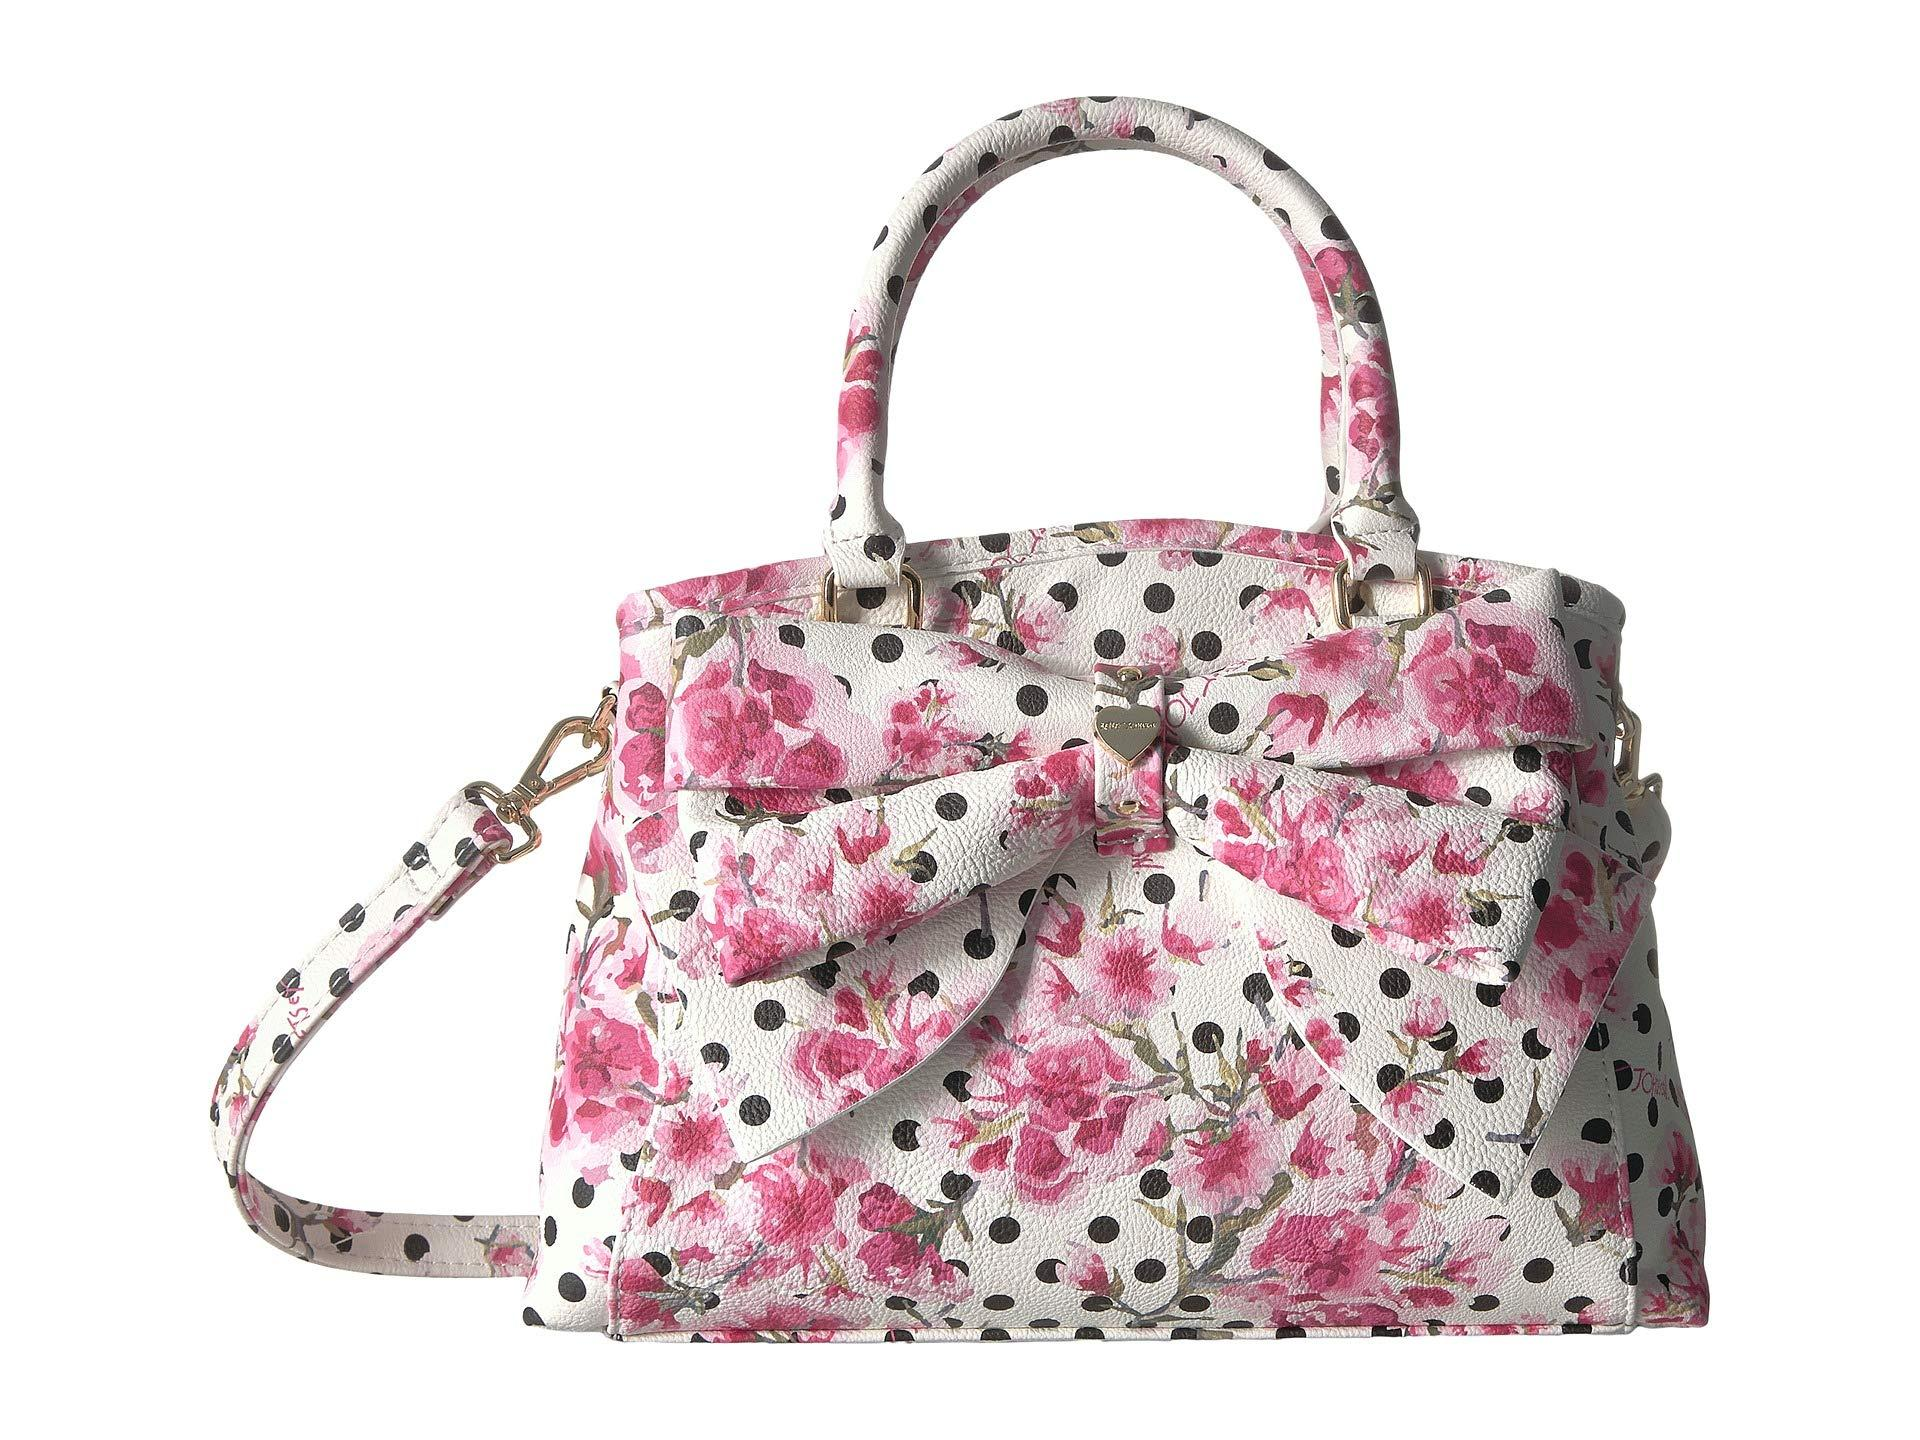 84ddbf3892 Lyst - Betsey Johnson Mini Bow Satchel in Pink